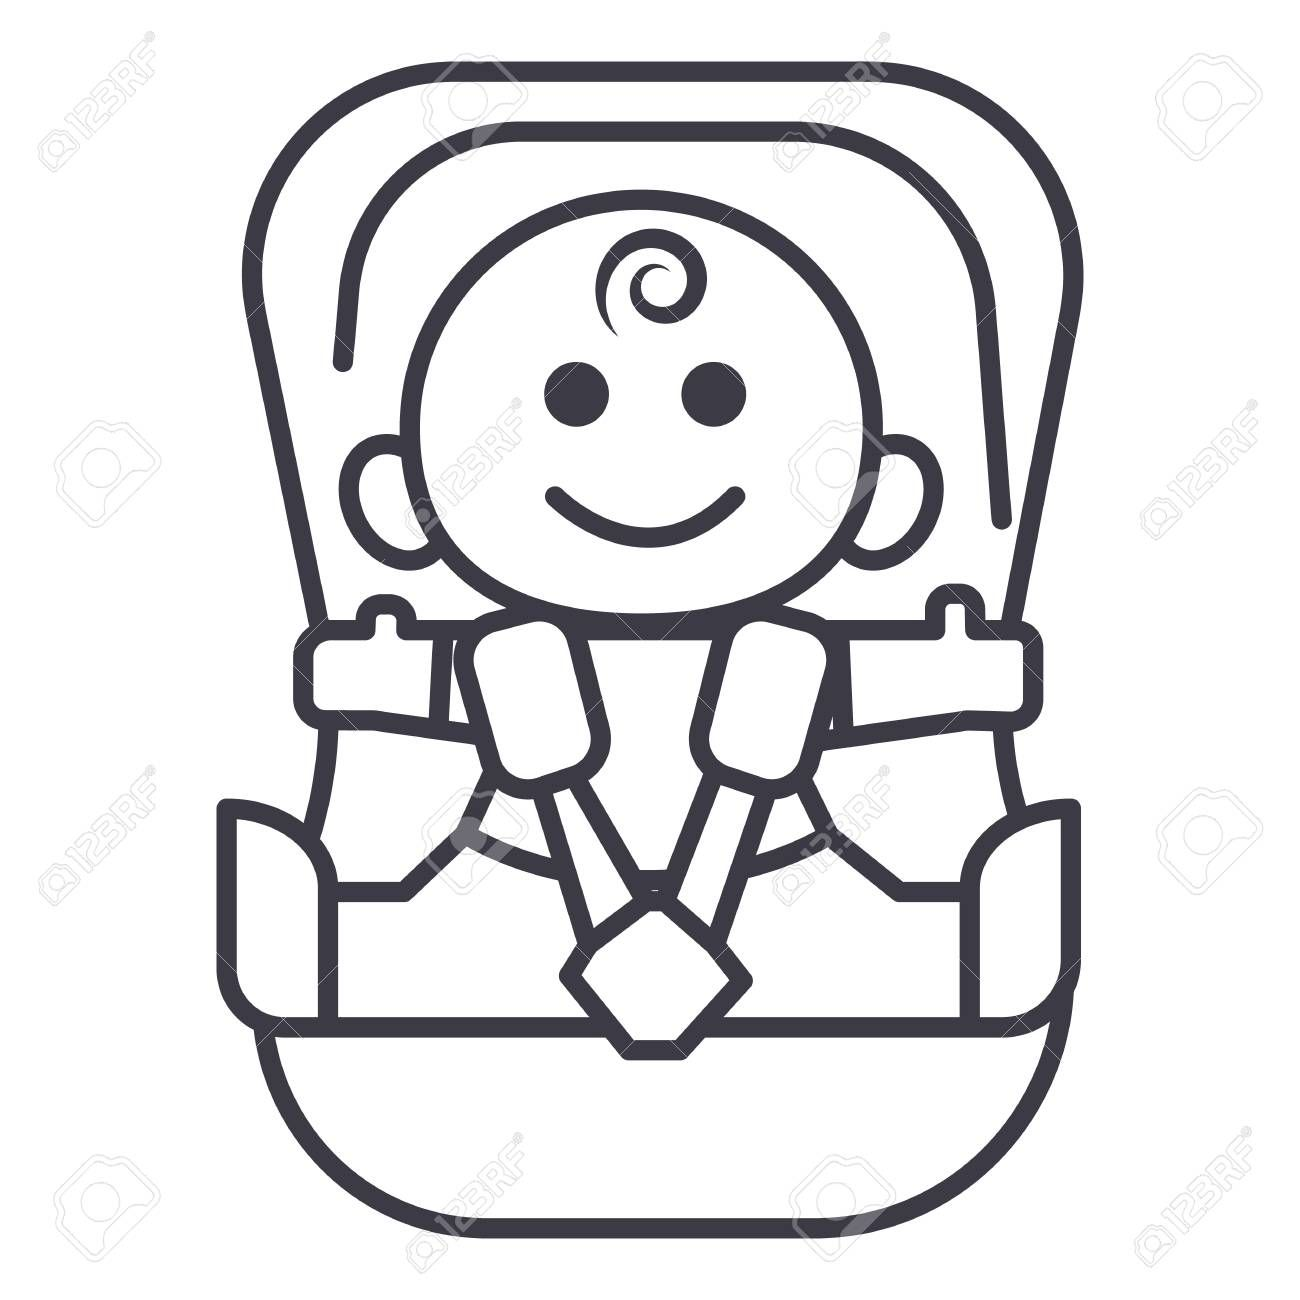 Baby In Car Security Chair Vector Line Icon Sign Illustration